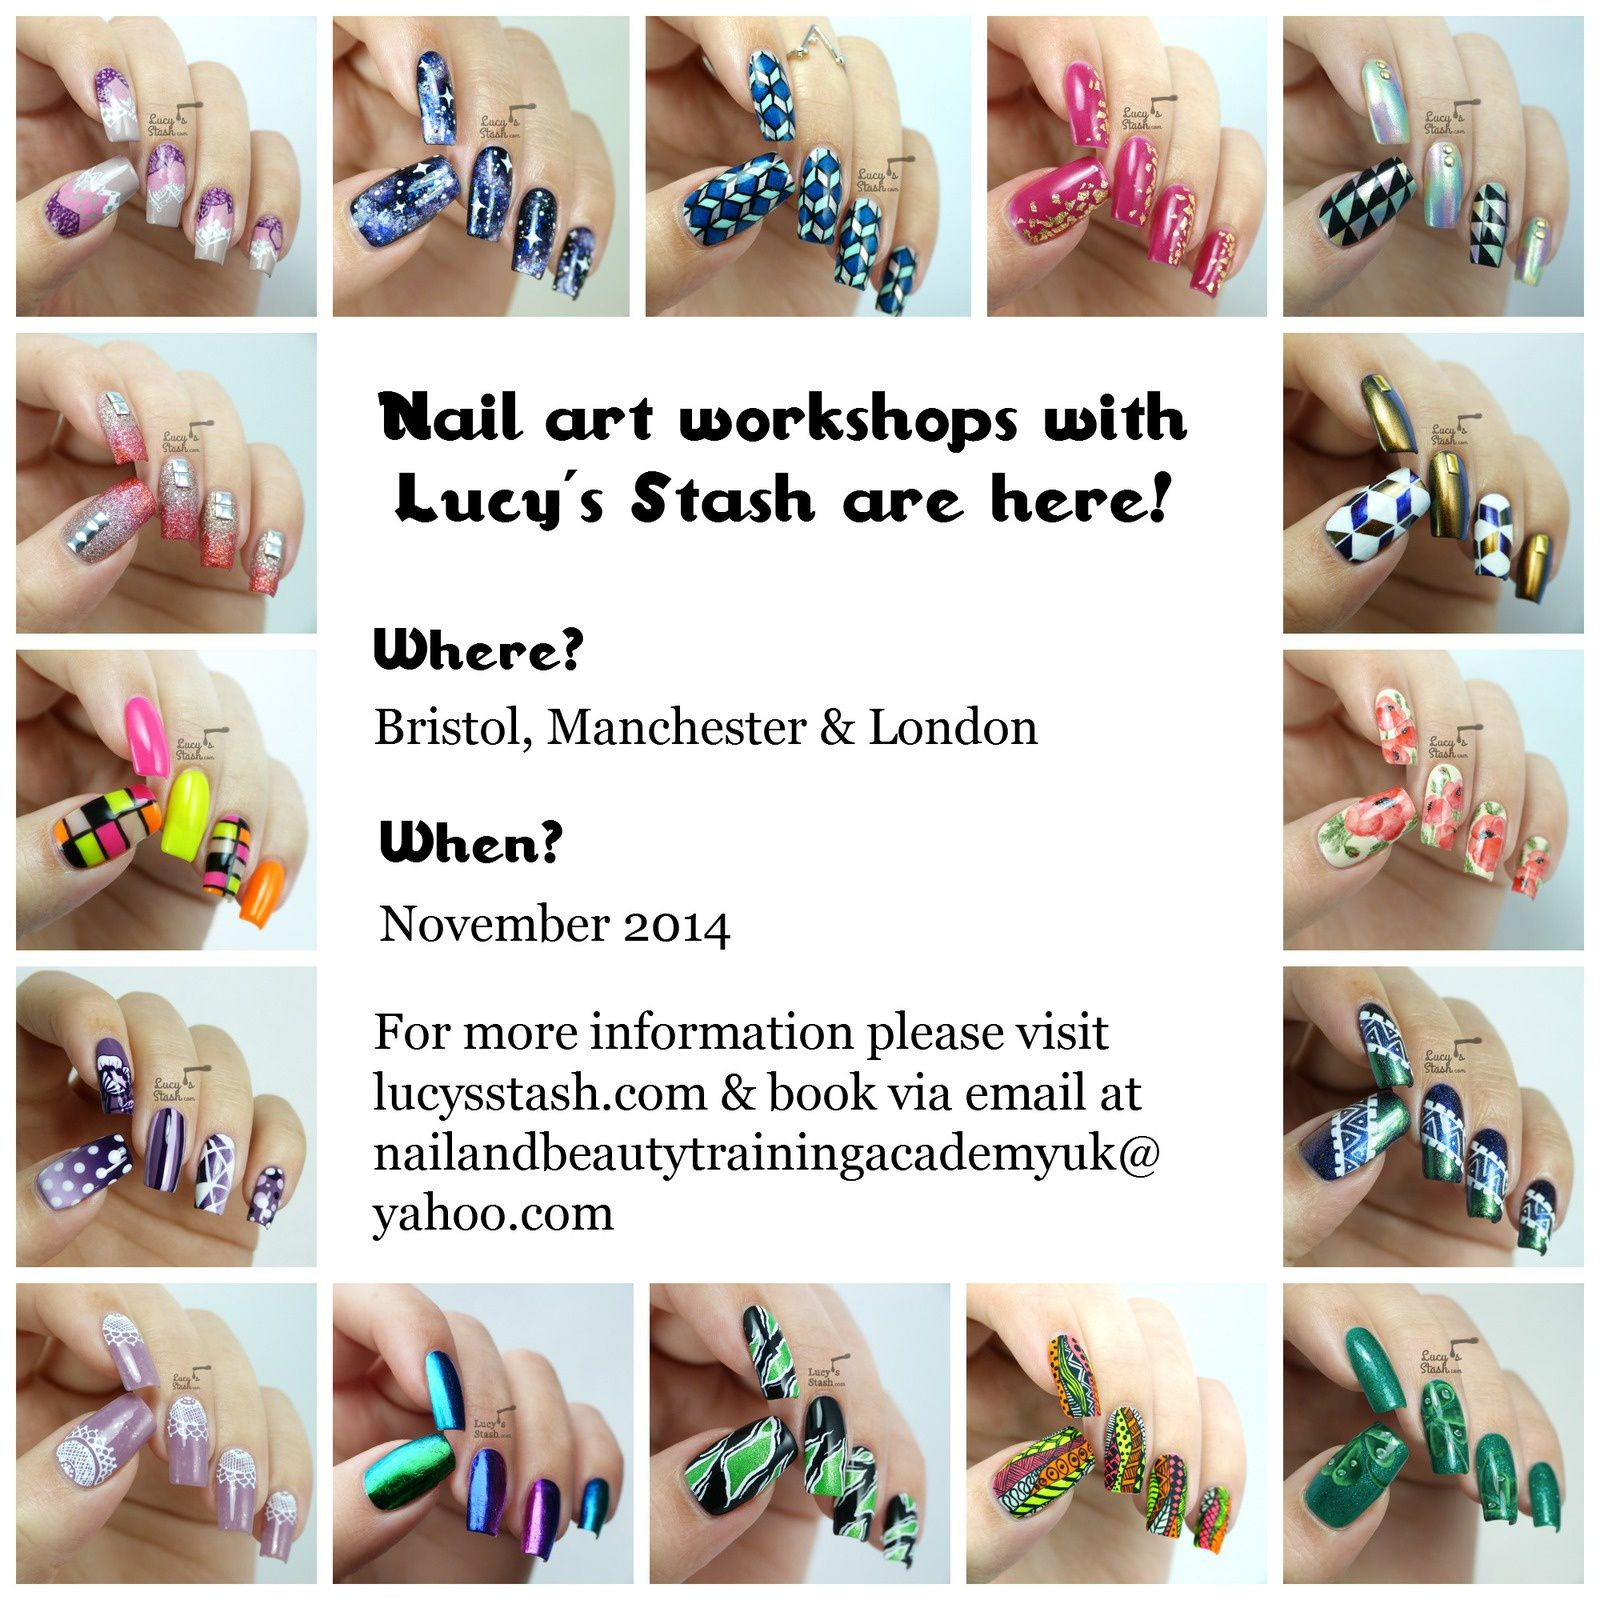 Would You Like To Attend Nail Art Workshop With Me?